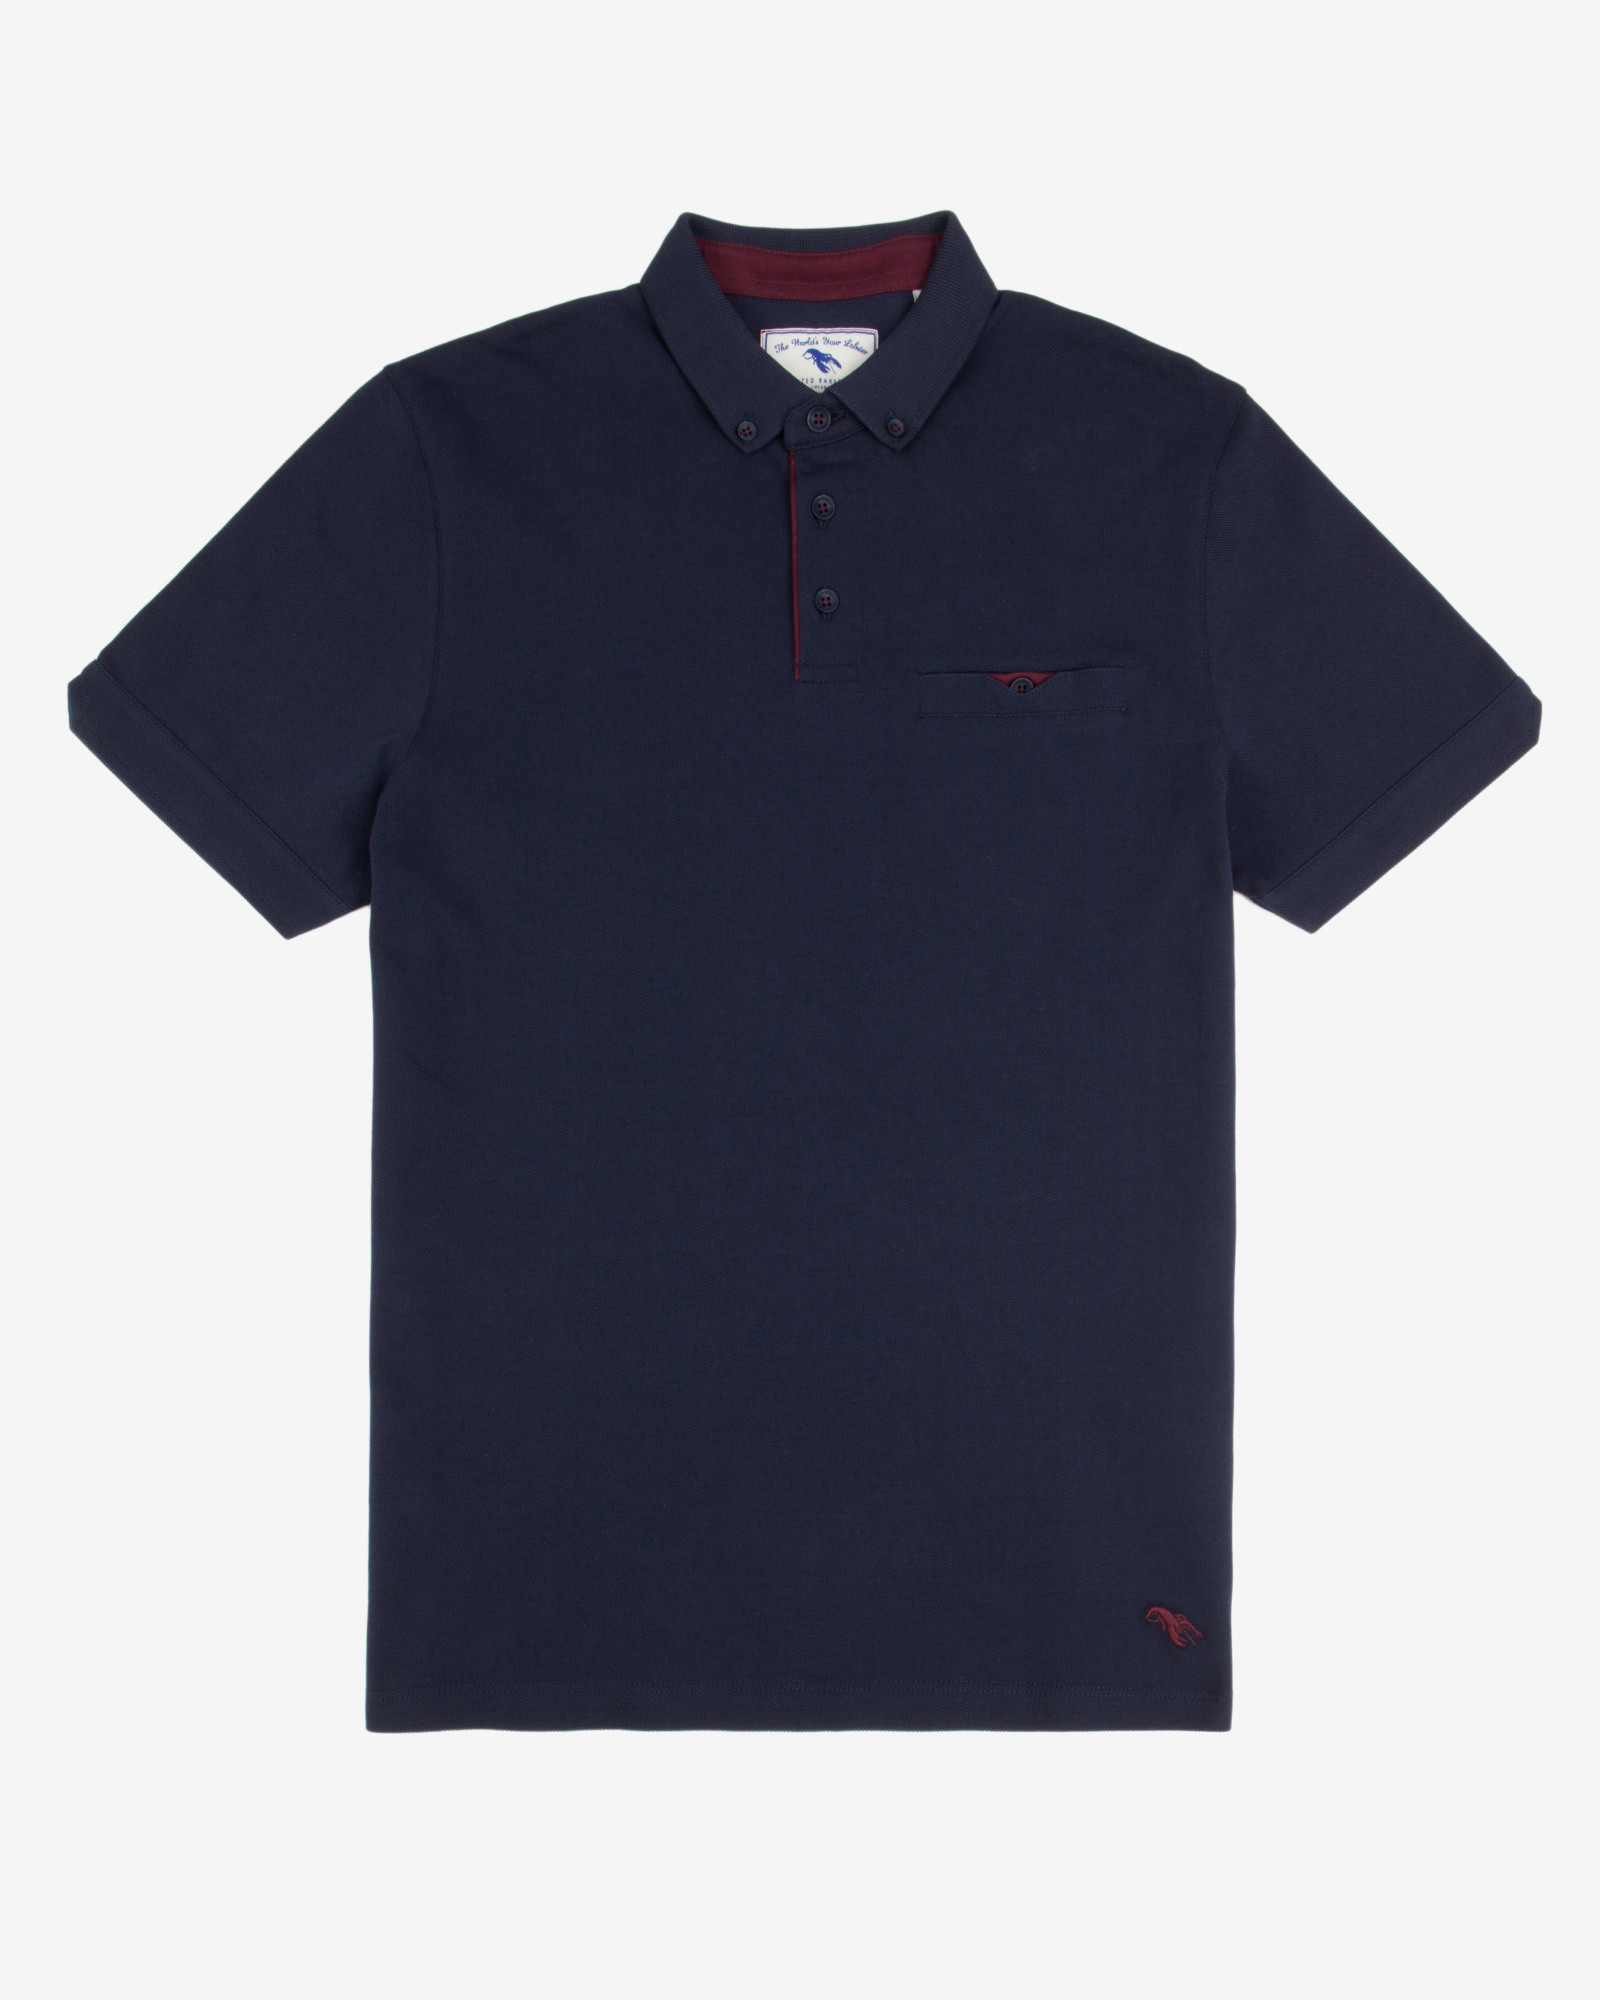 Ted baker cotton swim polo shirt in blue for men navy lyst for Ted baker mens polo shirts